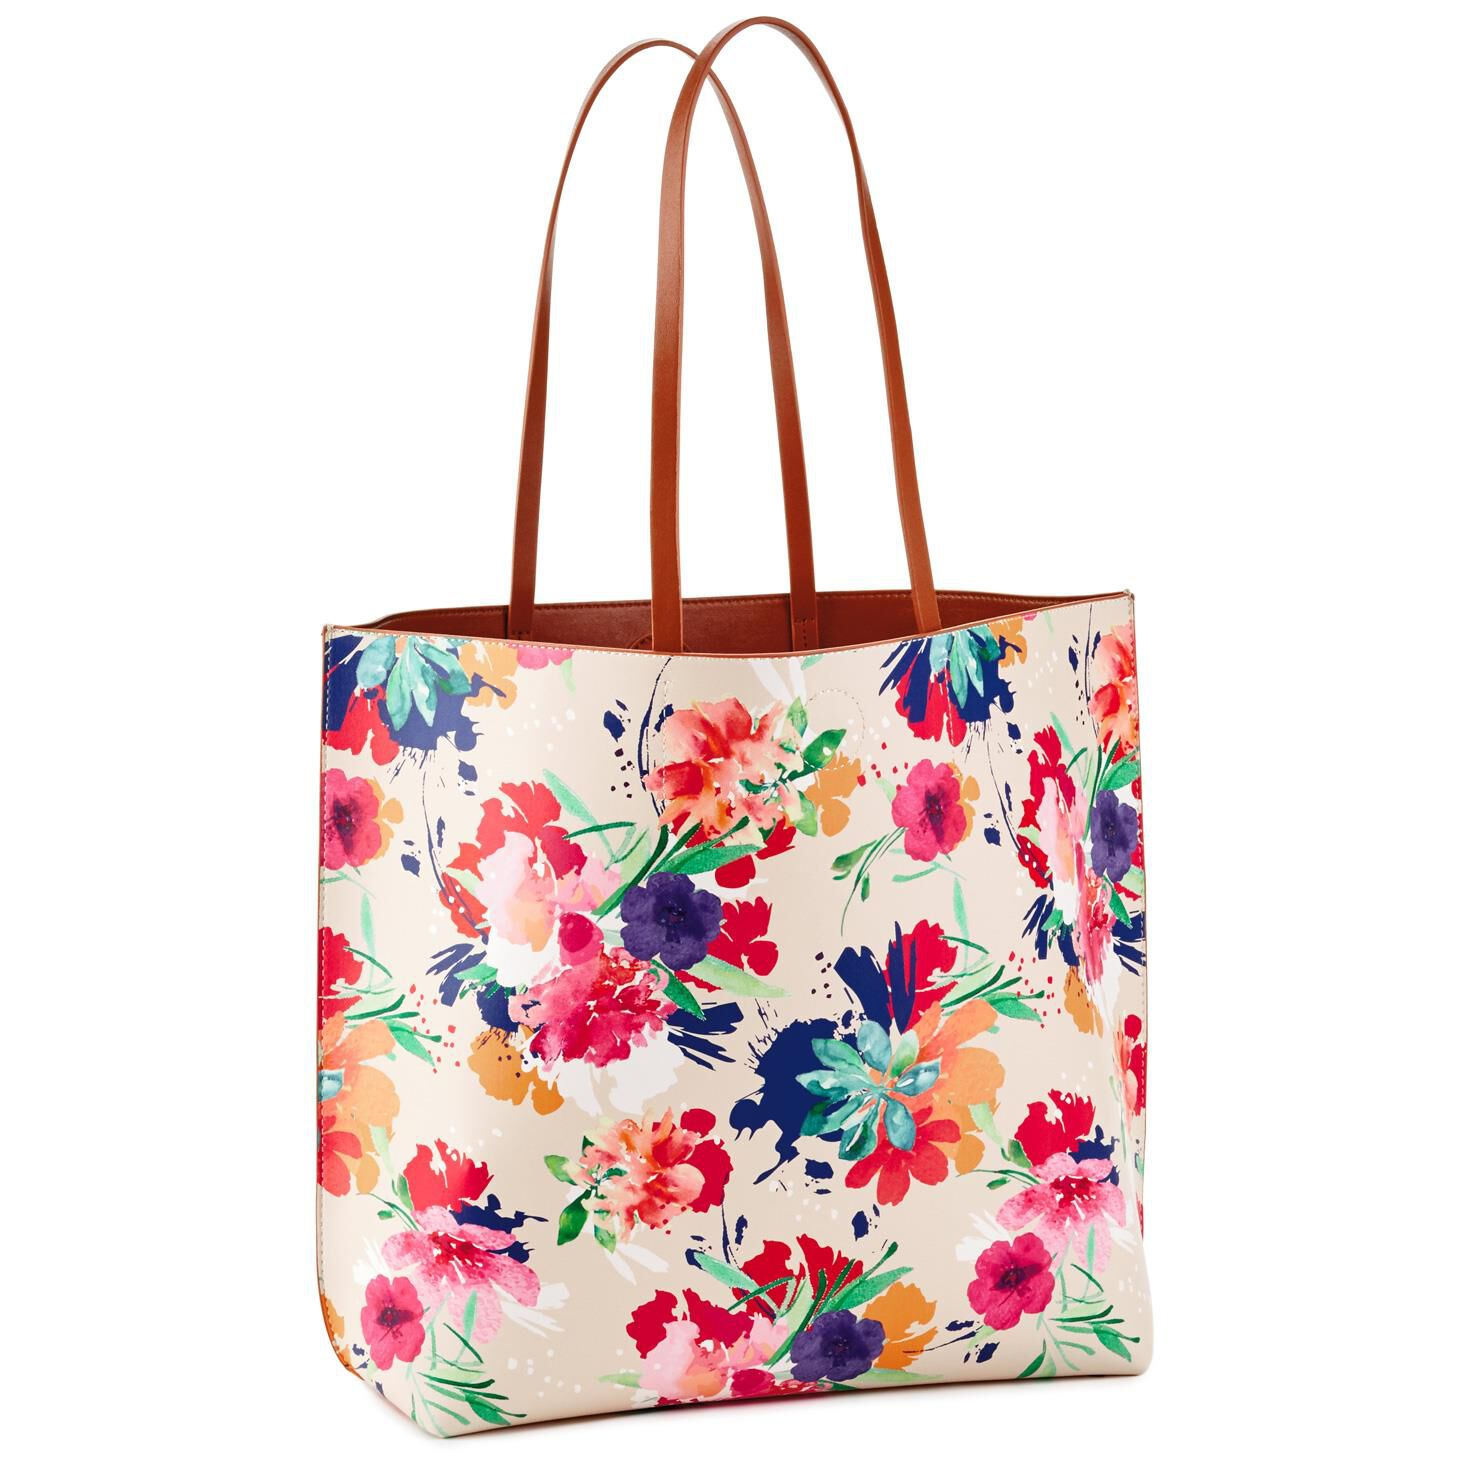 Tote Bag - Flowers 2 by VIDA VIDA jYHFr